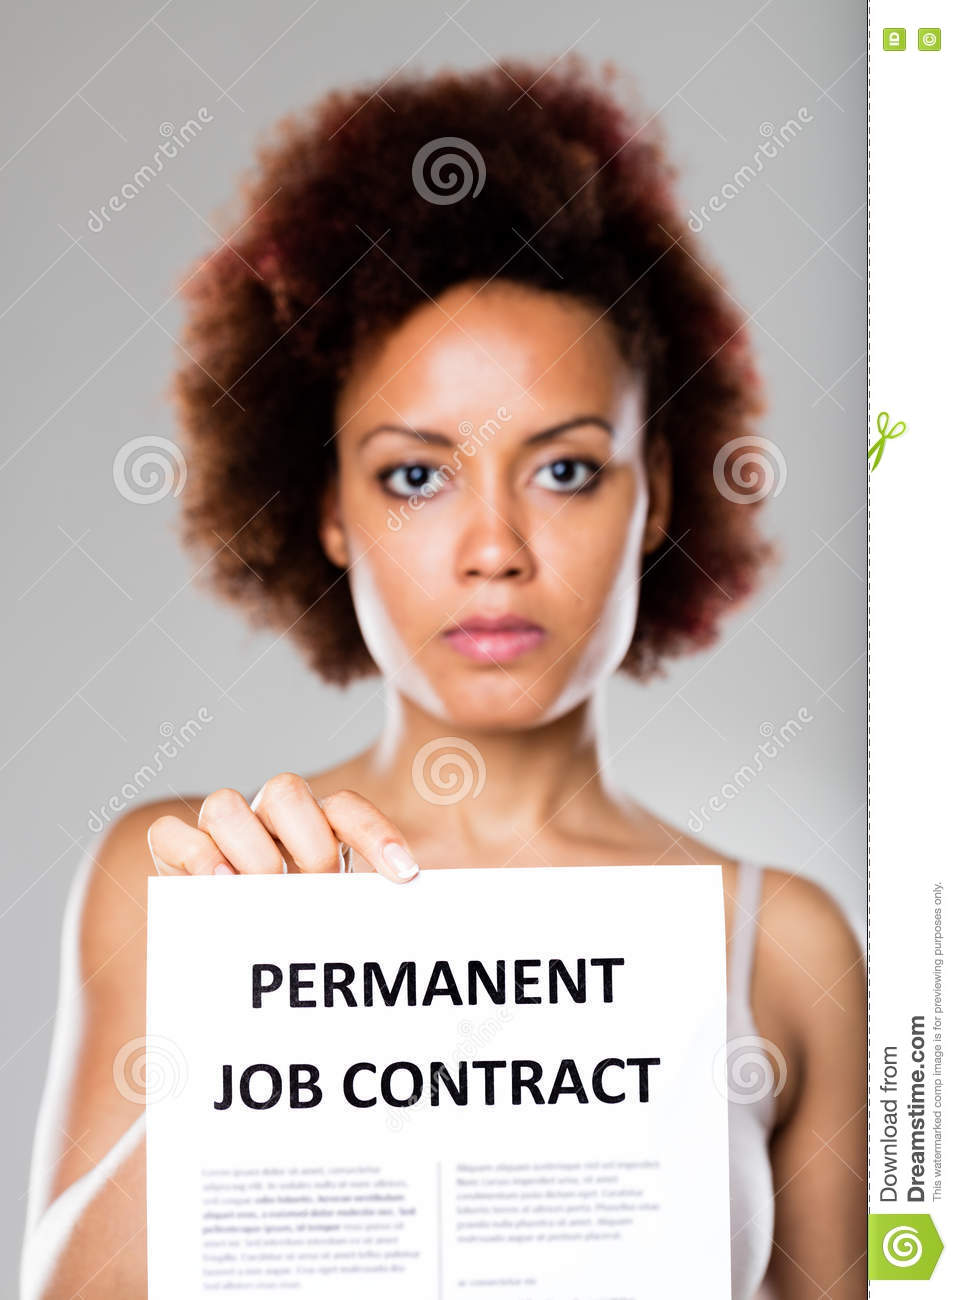 permanent job contract is not for everyone stock photo - image